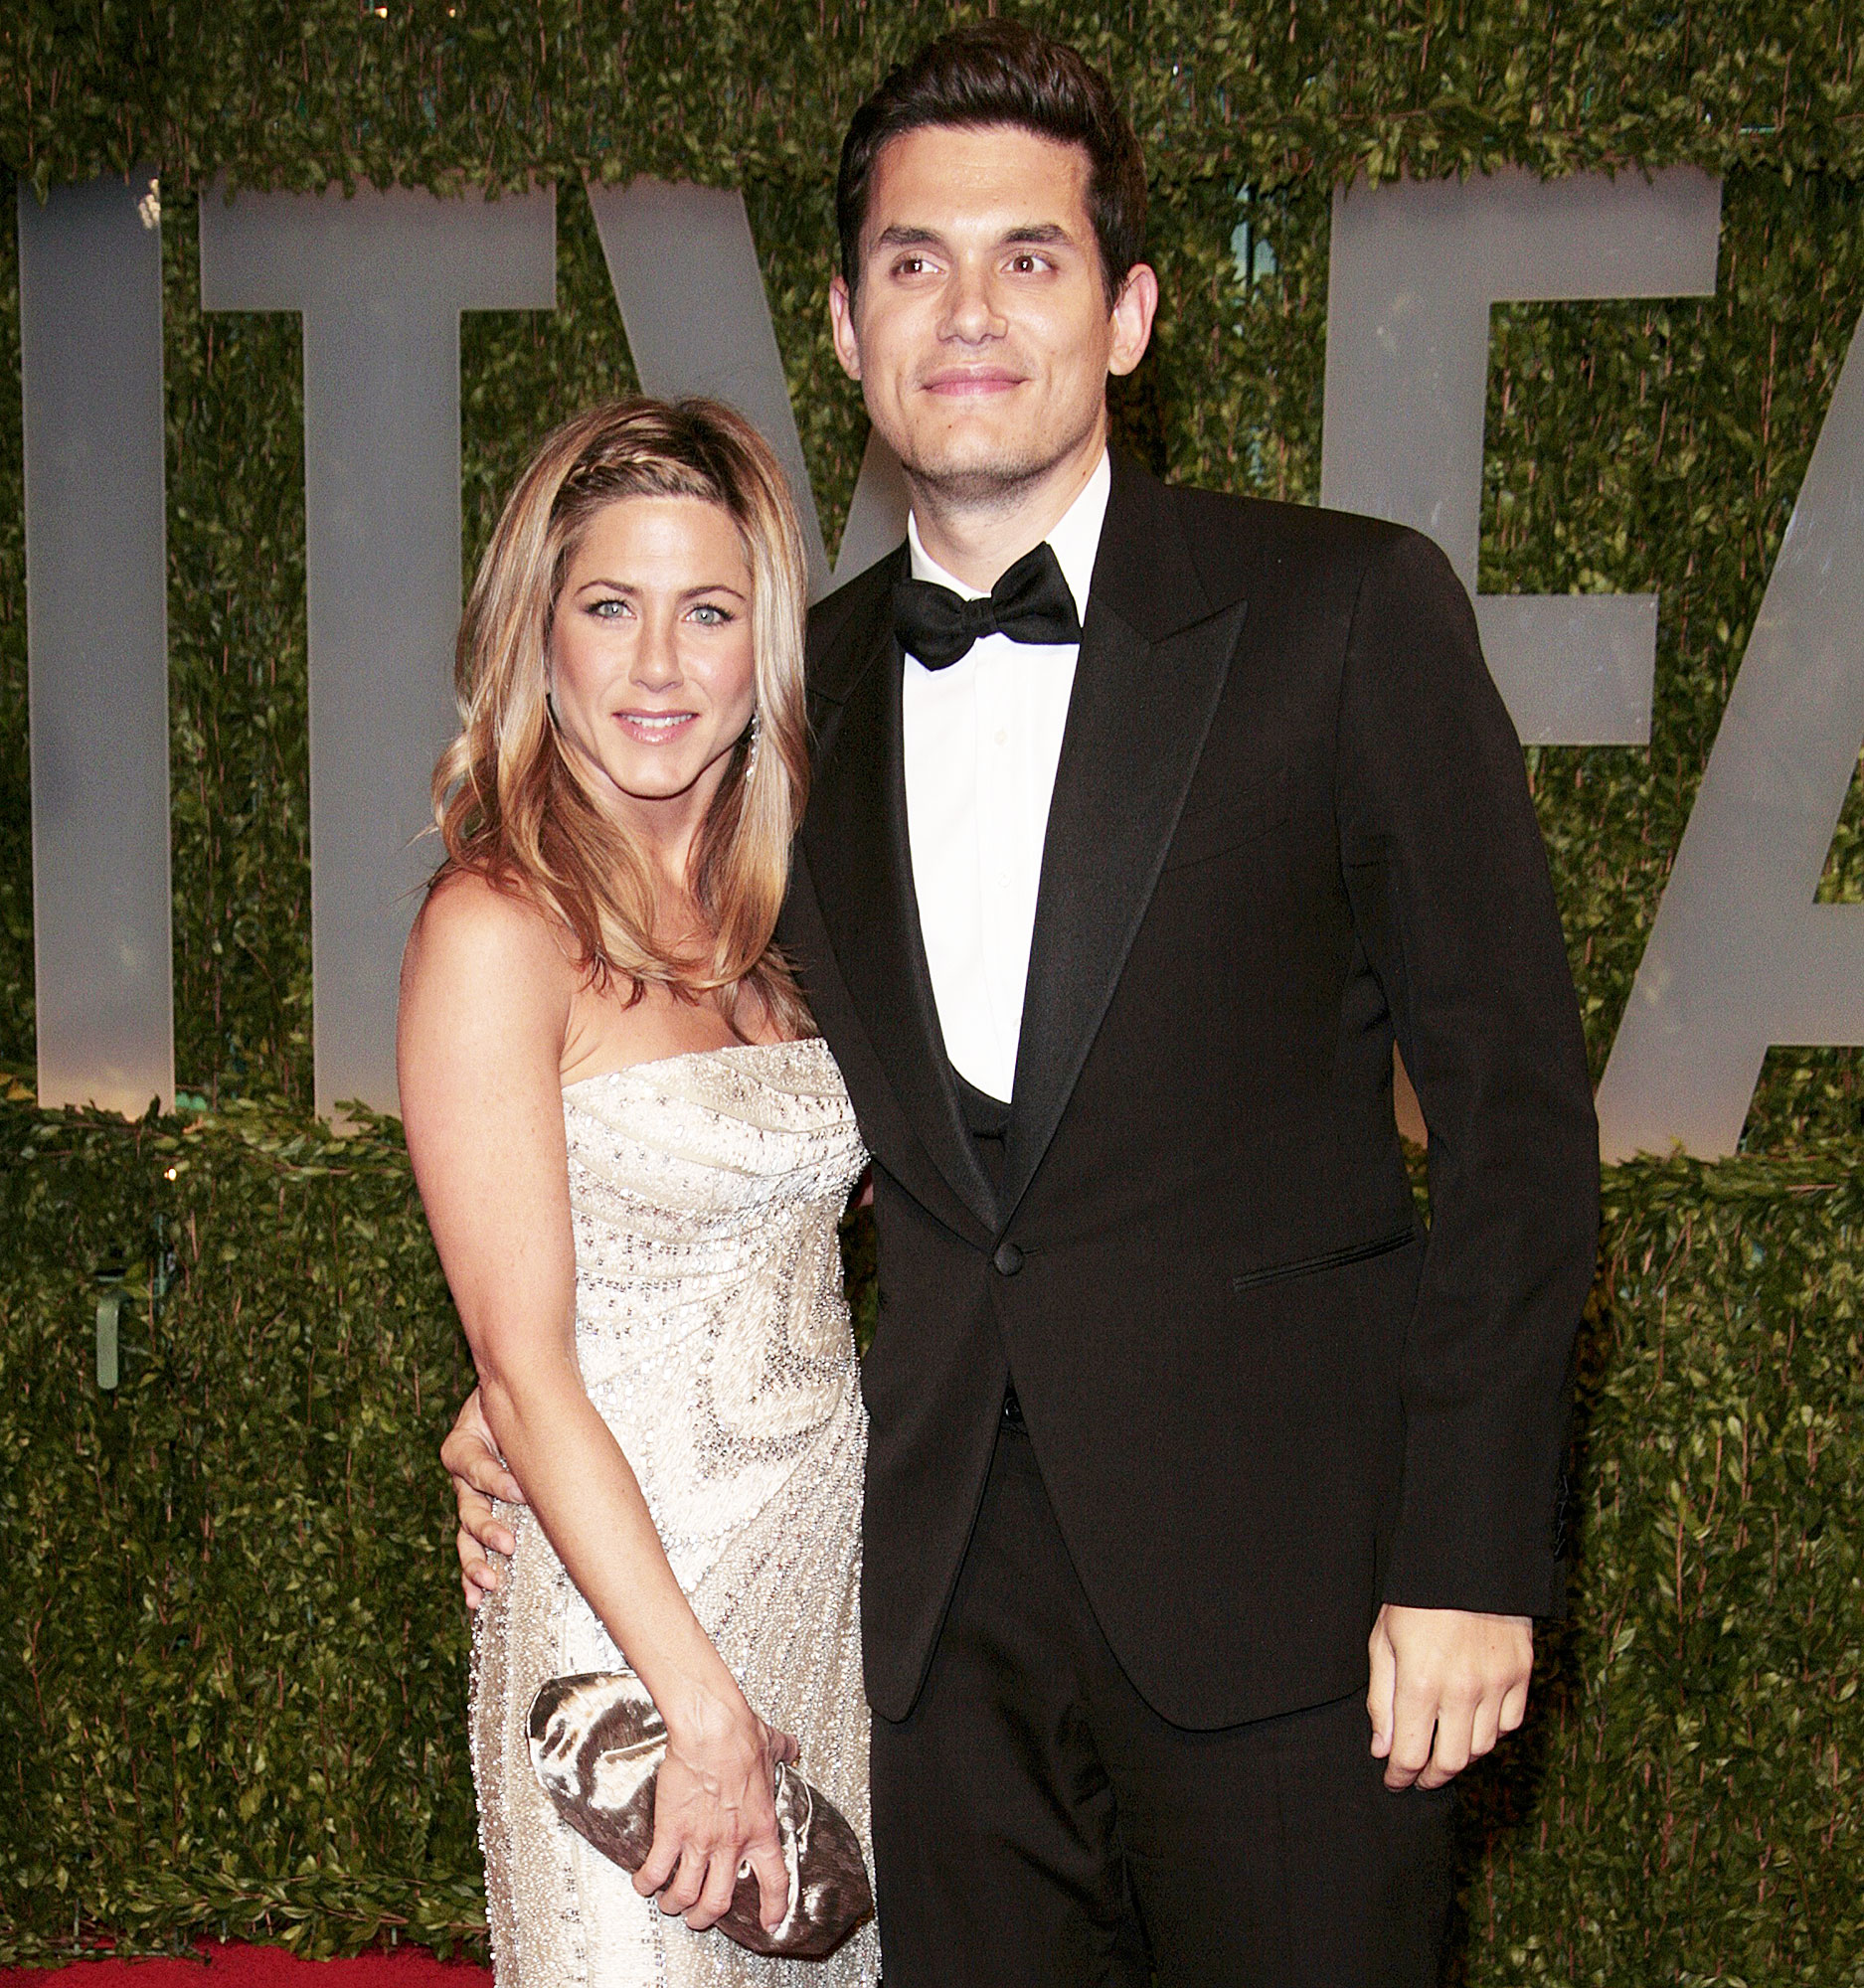 Jennifer Aniston and John Mayer at Academy Awards Vanity Fair Party in 2009 Jennifer Aniston and Ex John Mayer Spotted at Sunset Tower Hotel at the Same Time